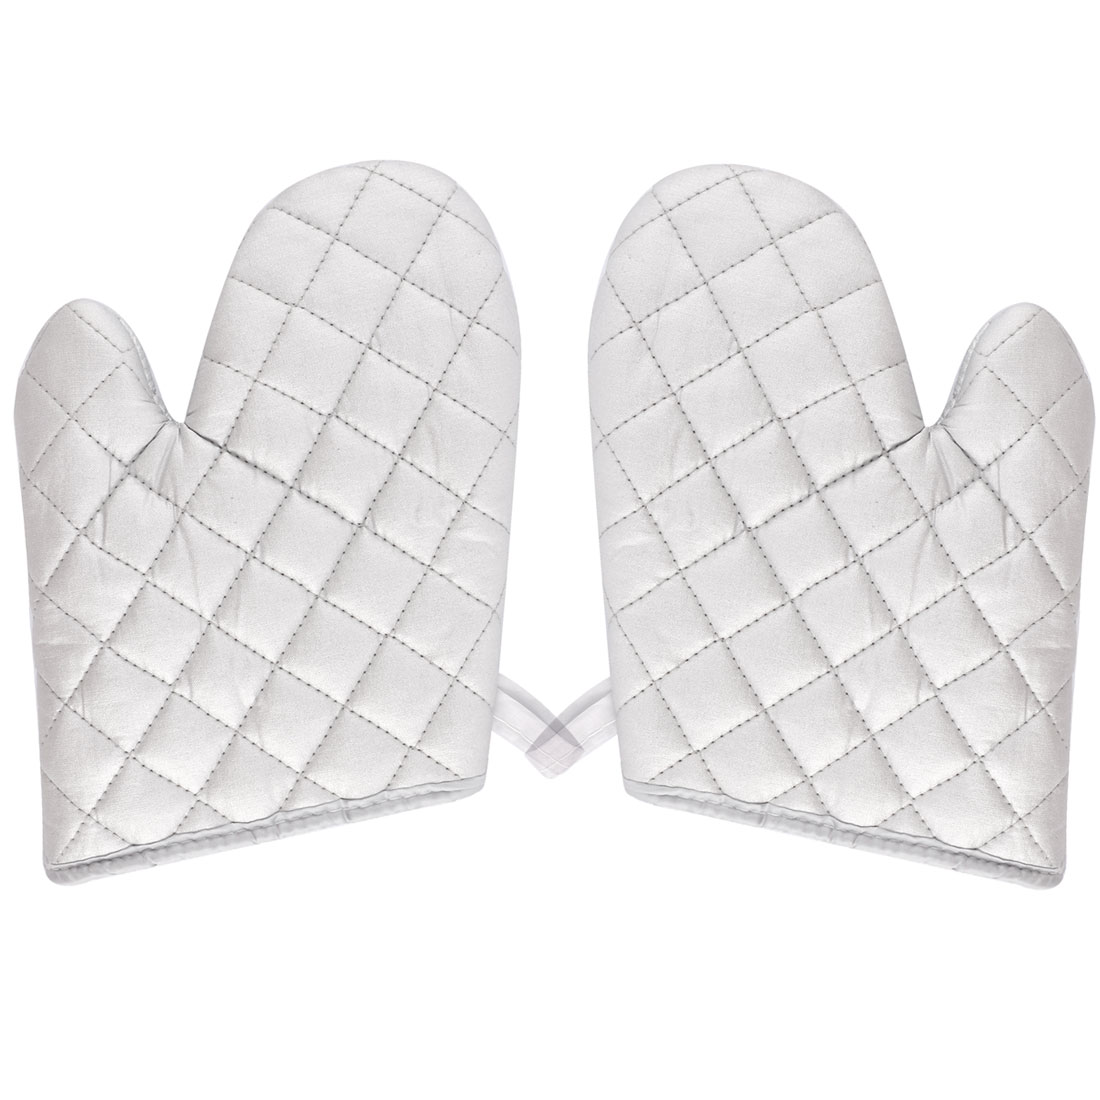 Kitchen Bakery Heat Resistance Microwave Baking Oven Mitt Gloves Silver White Pair